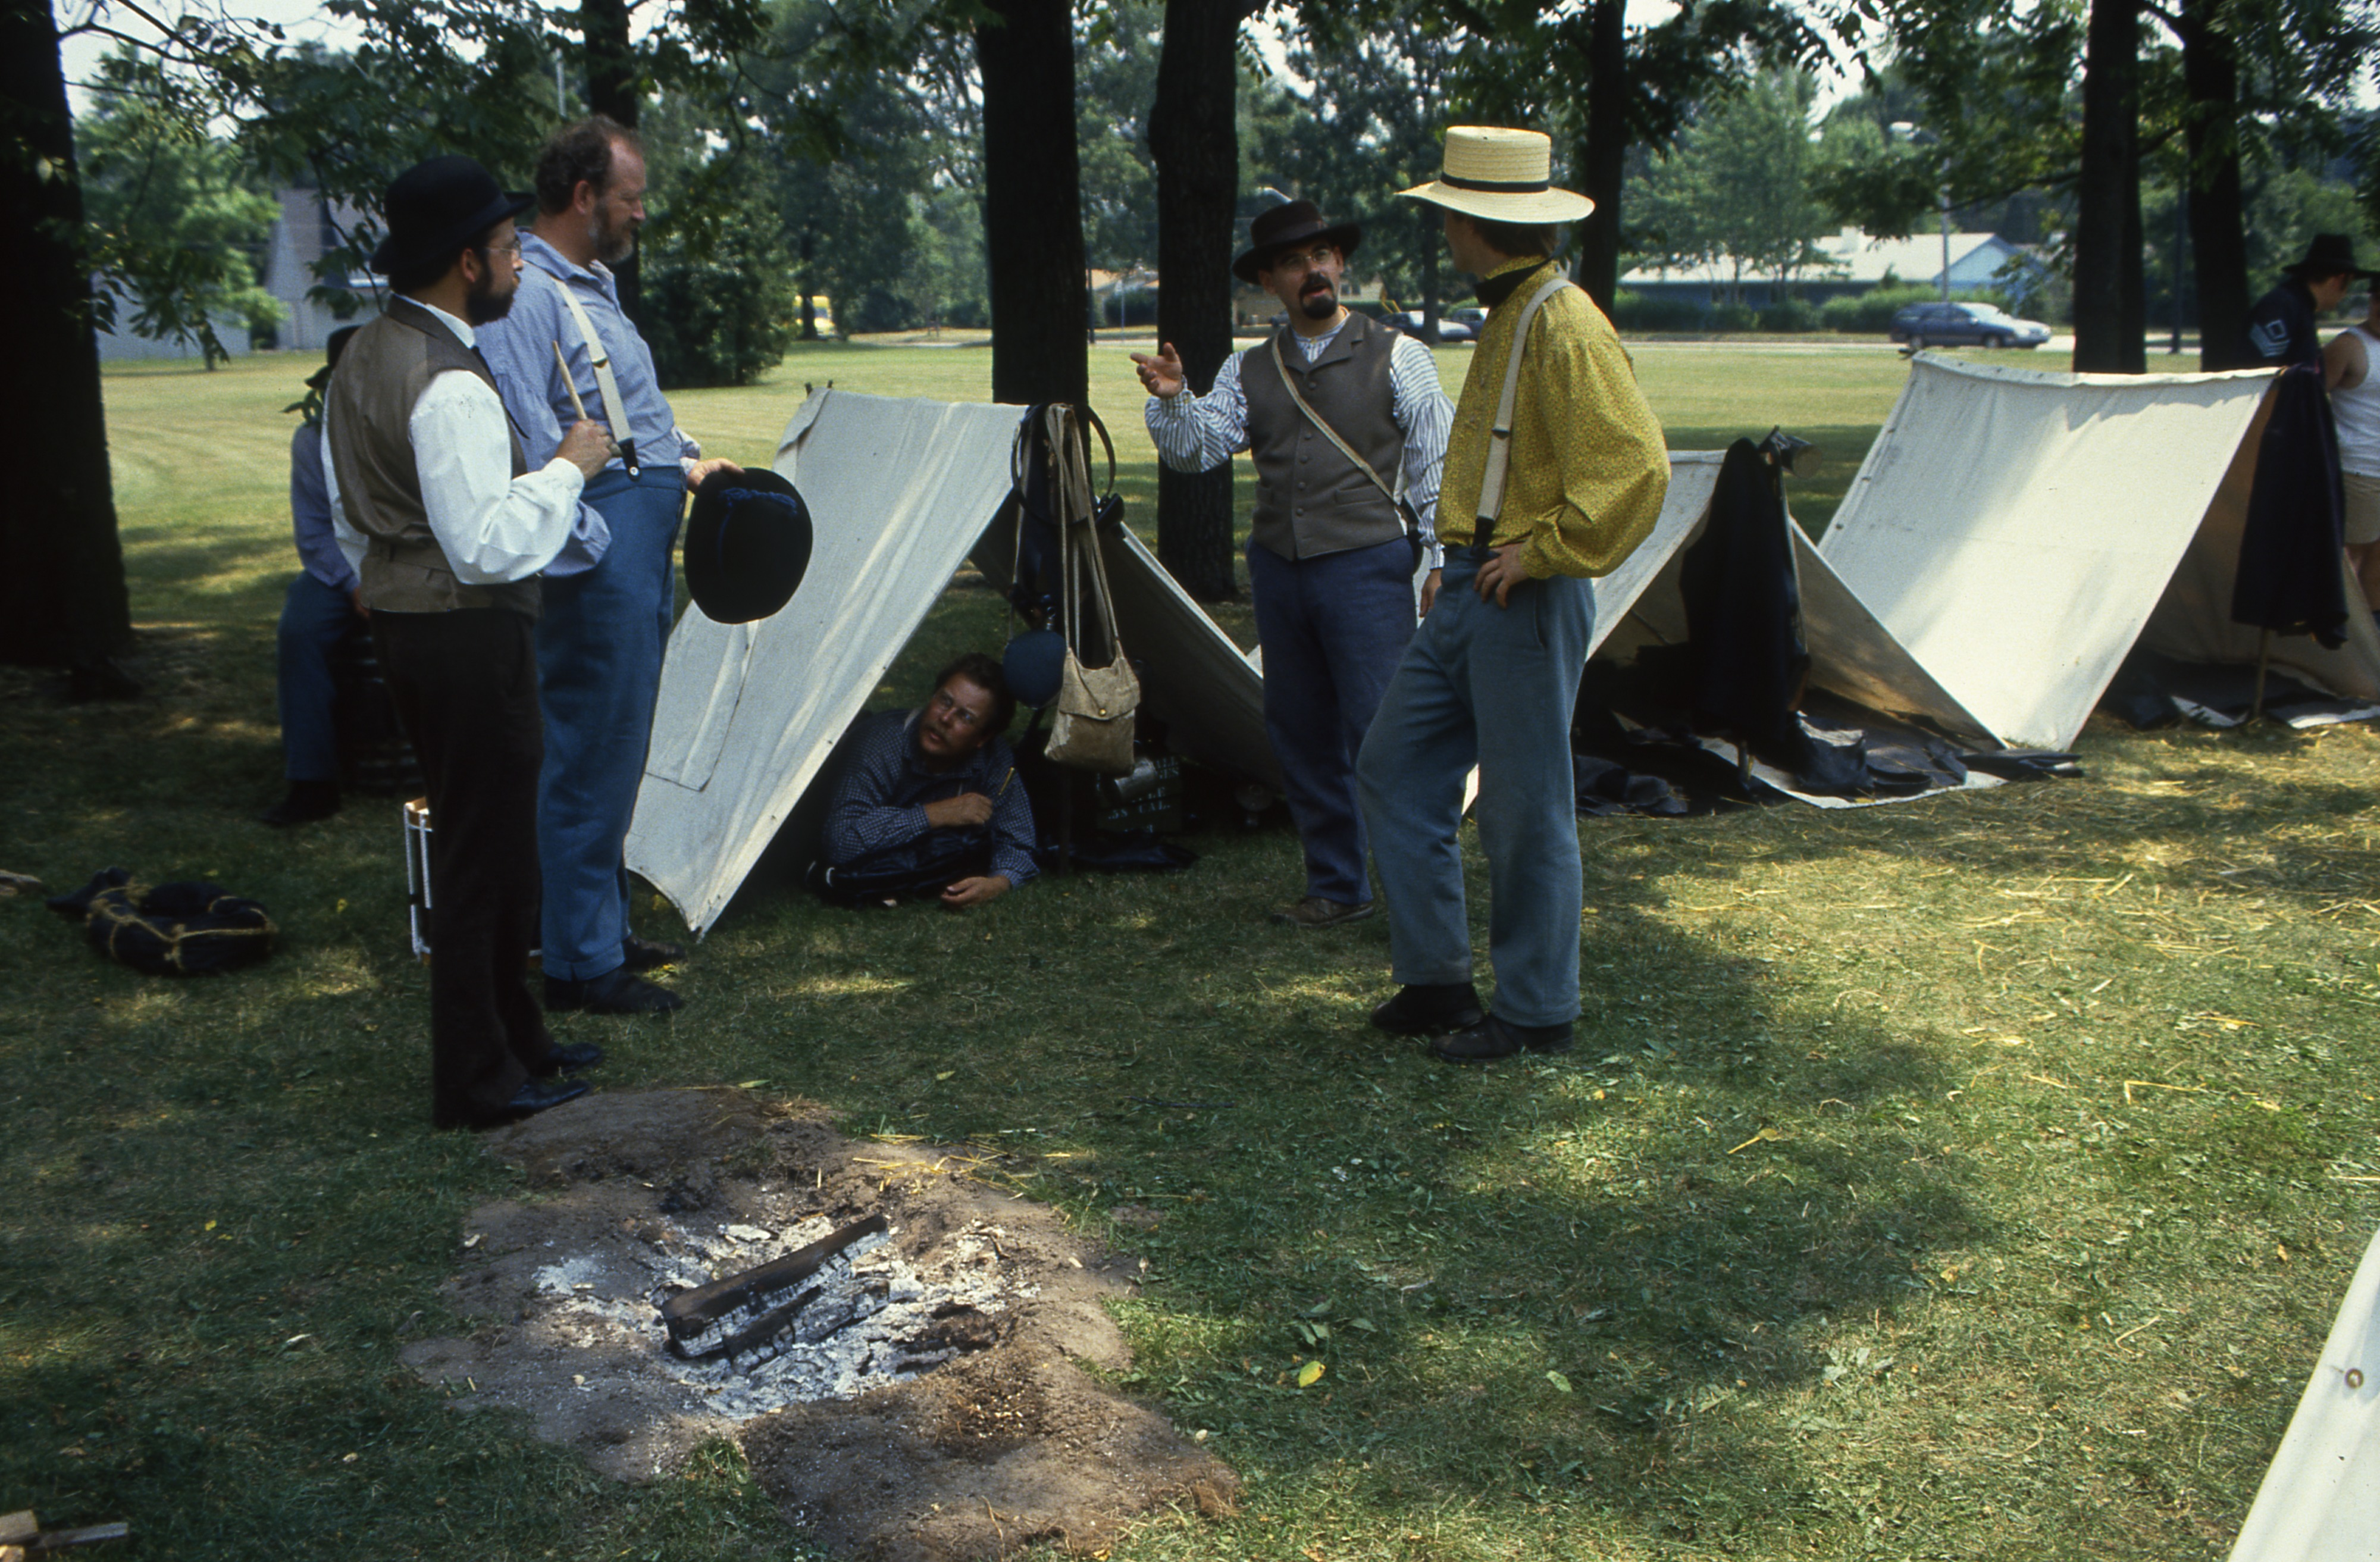 Civil War Re-enactment Participants At Their Tents At Cobblestone Farm, July 28, 1990 image